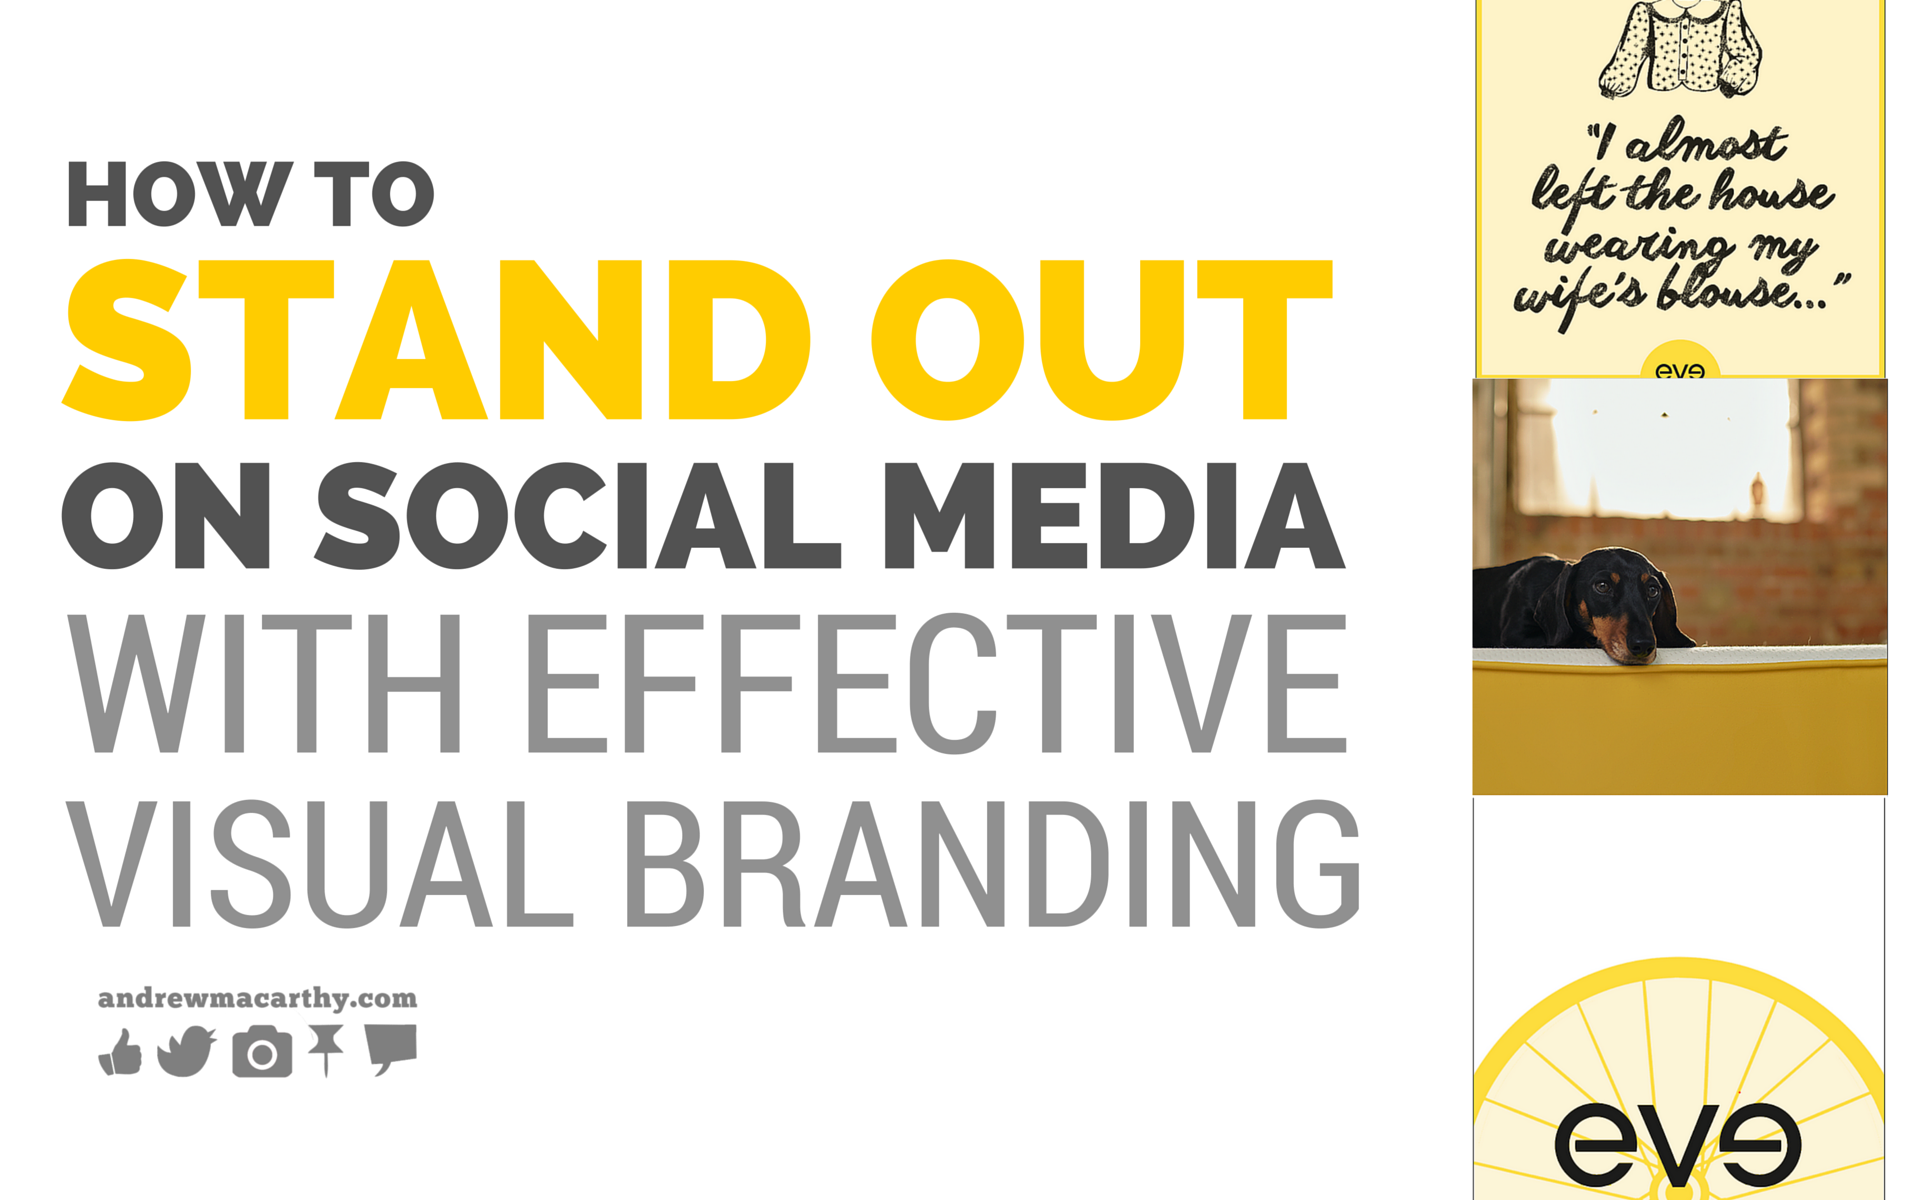 How to STAND OUT on Social Media With Effective Visual Branding (Eve Mattresses Case Study)How to STAND OUT on Social Media With Effective Visual Branding (Eve Mattresses Case Study)